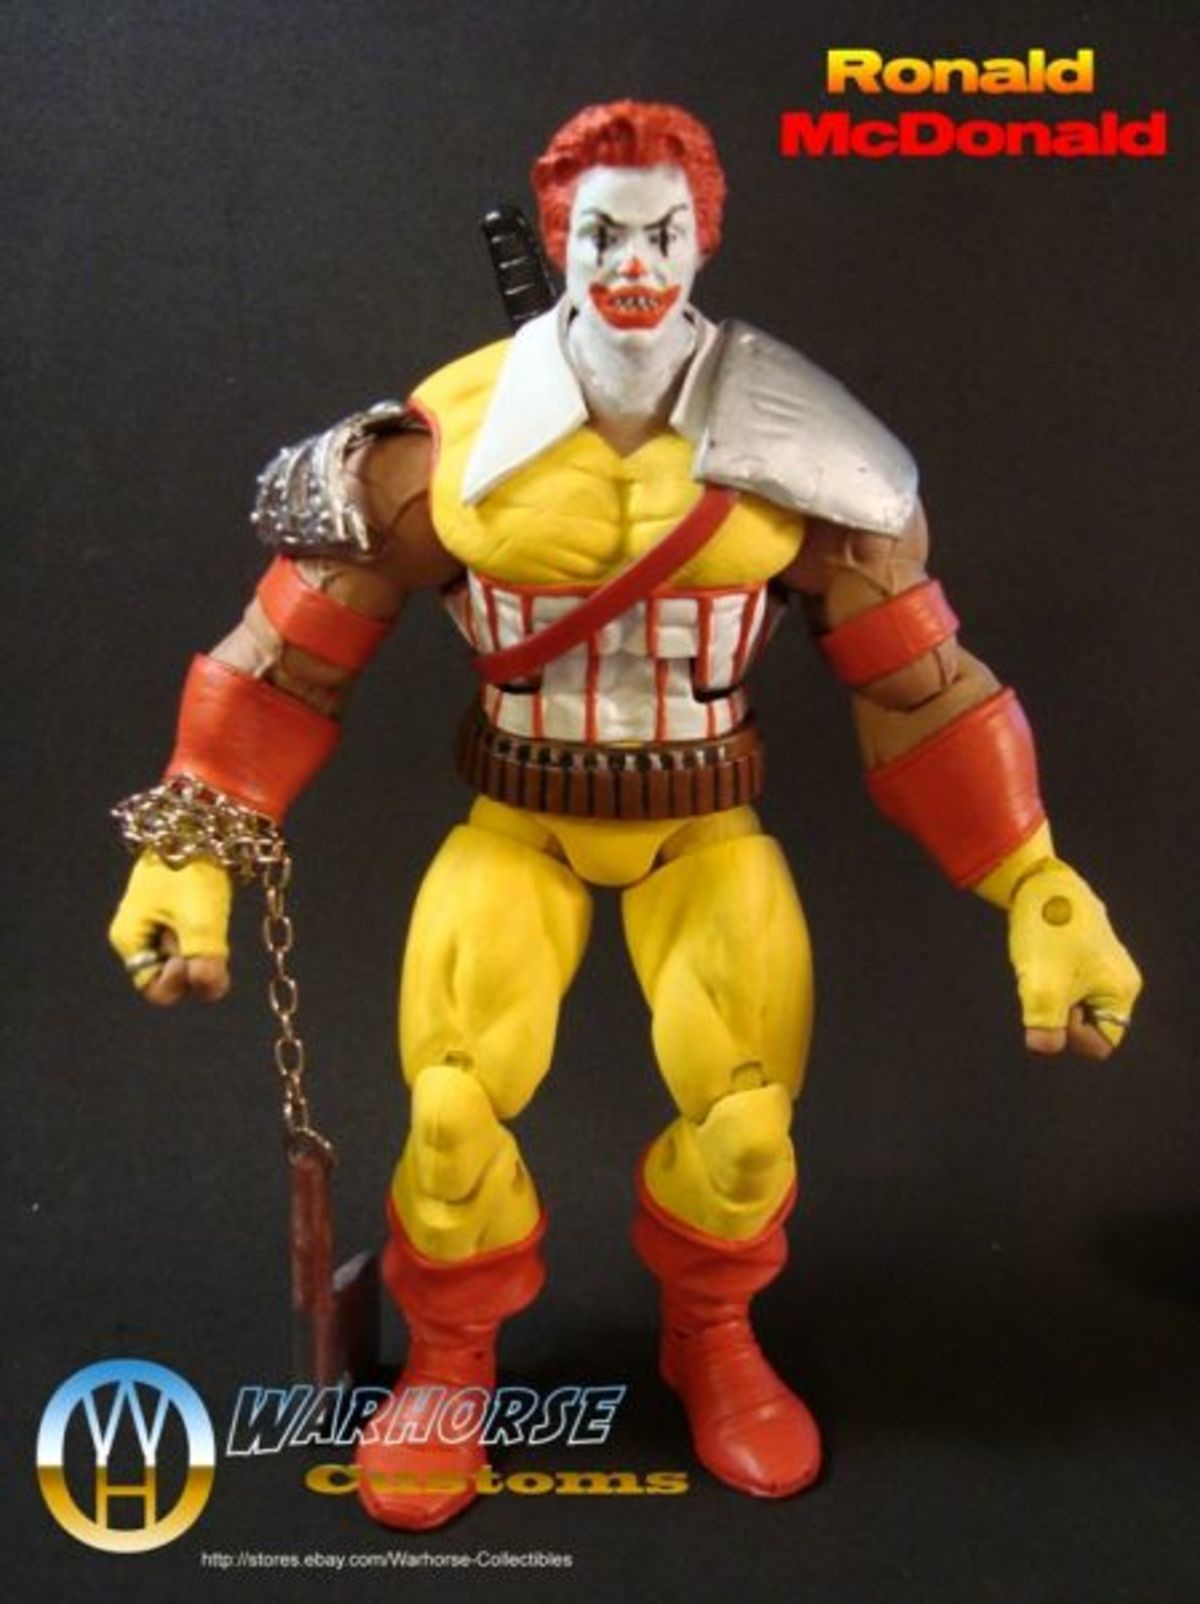 New McDonalds Toys. Looks like McDonalds is pulling out all the stops to appeal to the newer generation of kids with these new Happy Meal toys... Ronald's Bizzare Adventure